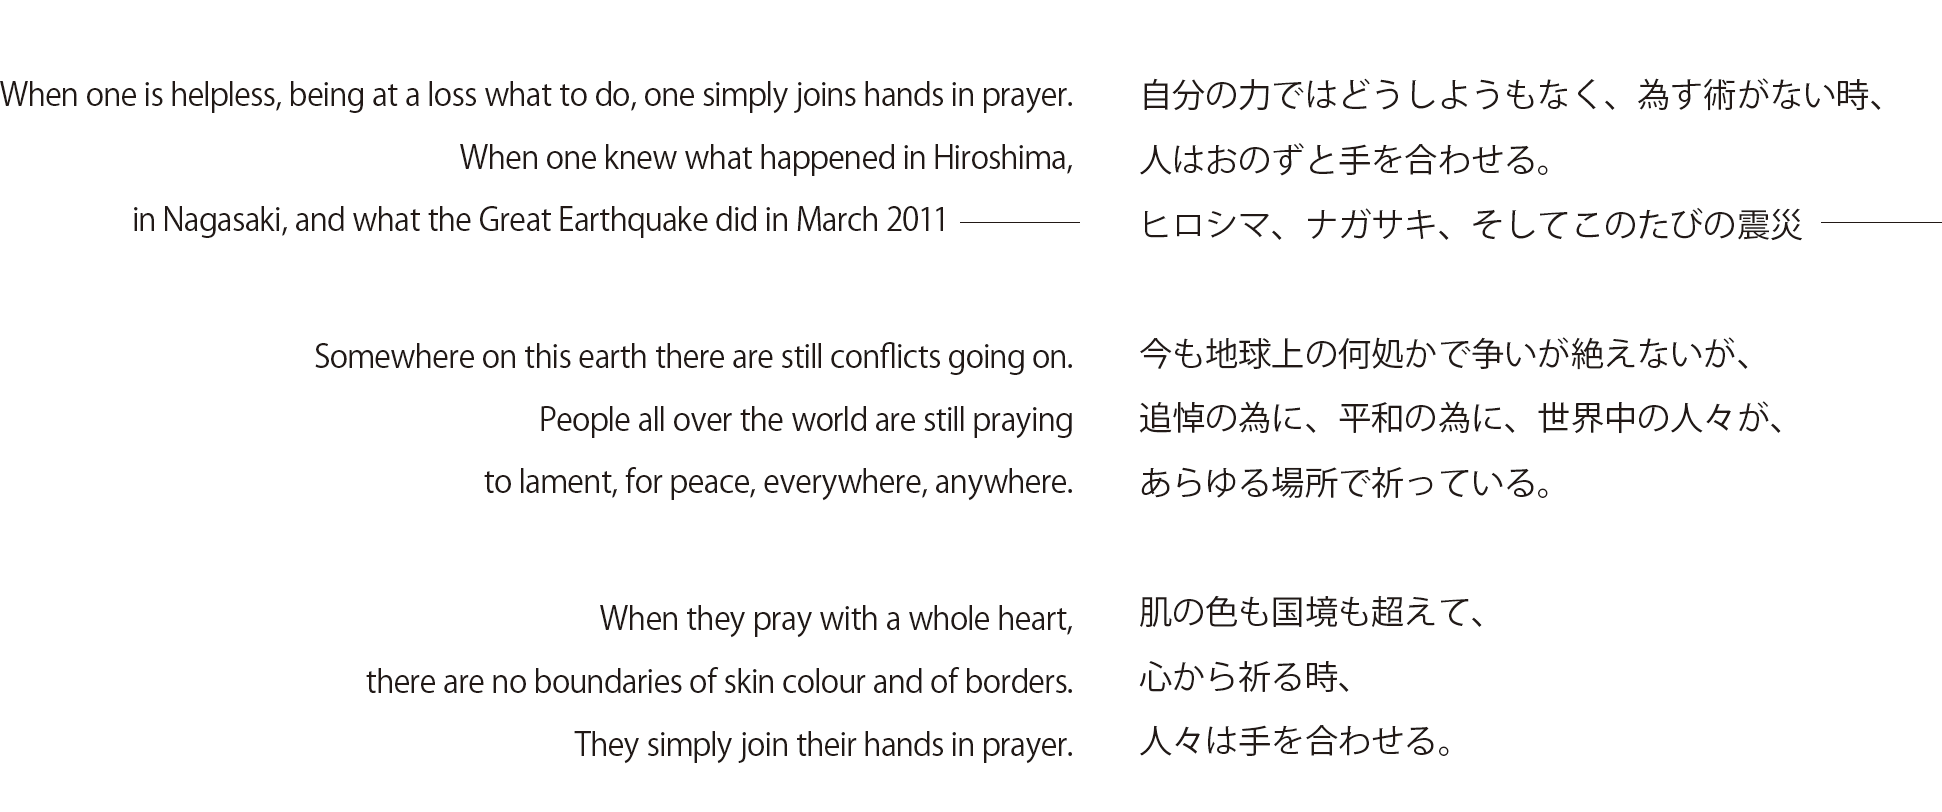 When one is helpless, being at a loss what to do, one simply joins hands in prayer. When one knew what happened in Hiroshima, in Nagasaki, and what the Great Earthquake did in March 2011 Somewhere on this earth there are still conflicts going on. People all over the world are still praying to lament, for peace, everywhere, anywhere. When they pray with a whole heart, there are no boundaries of skin colour and of borders. They simply join their hands in prayer.